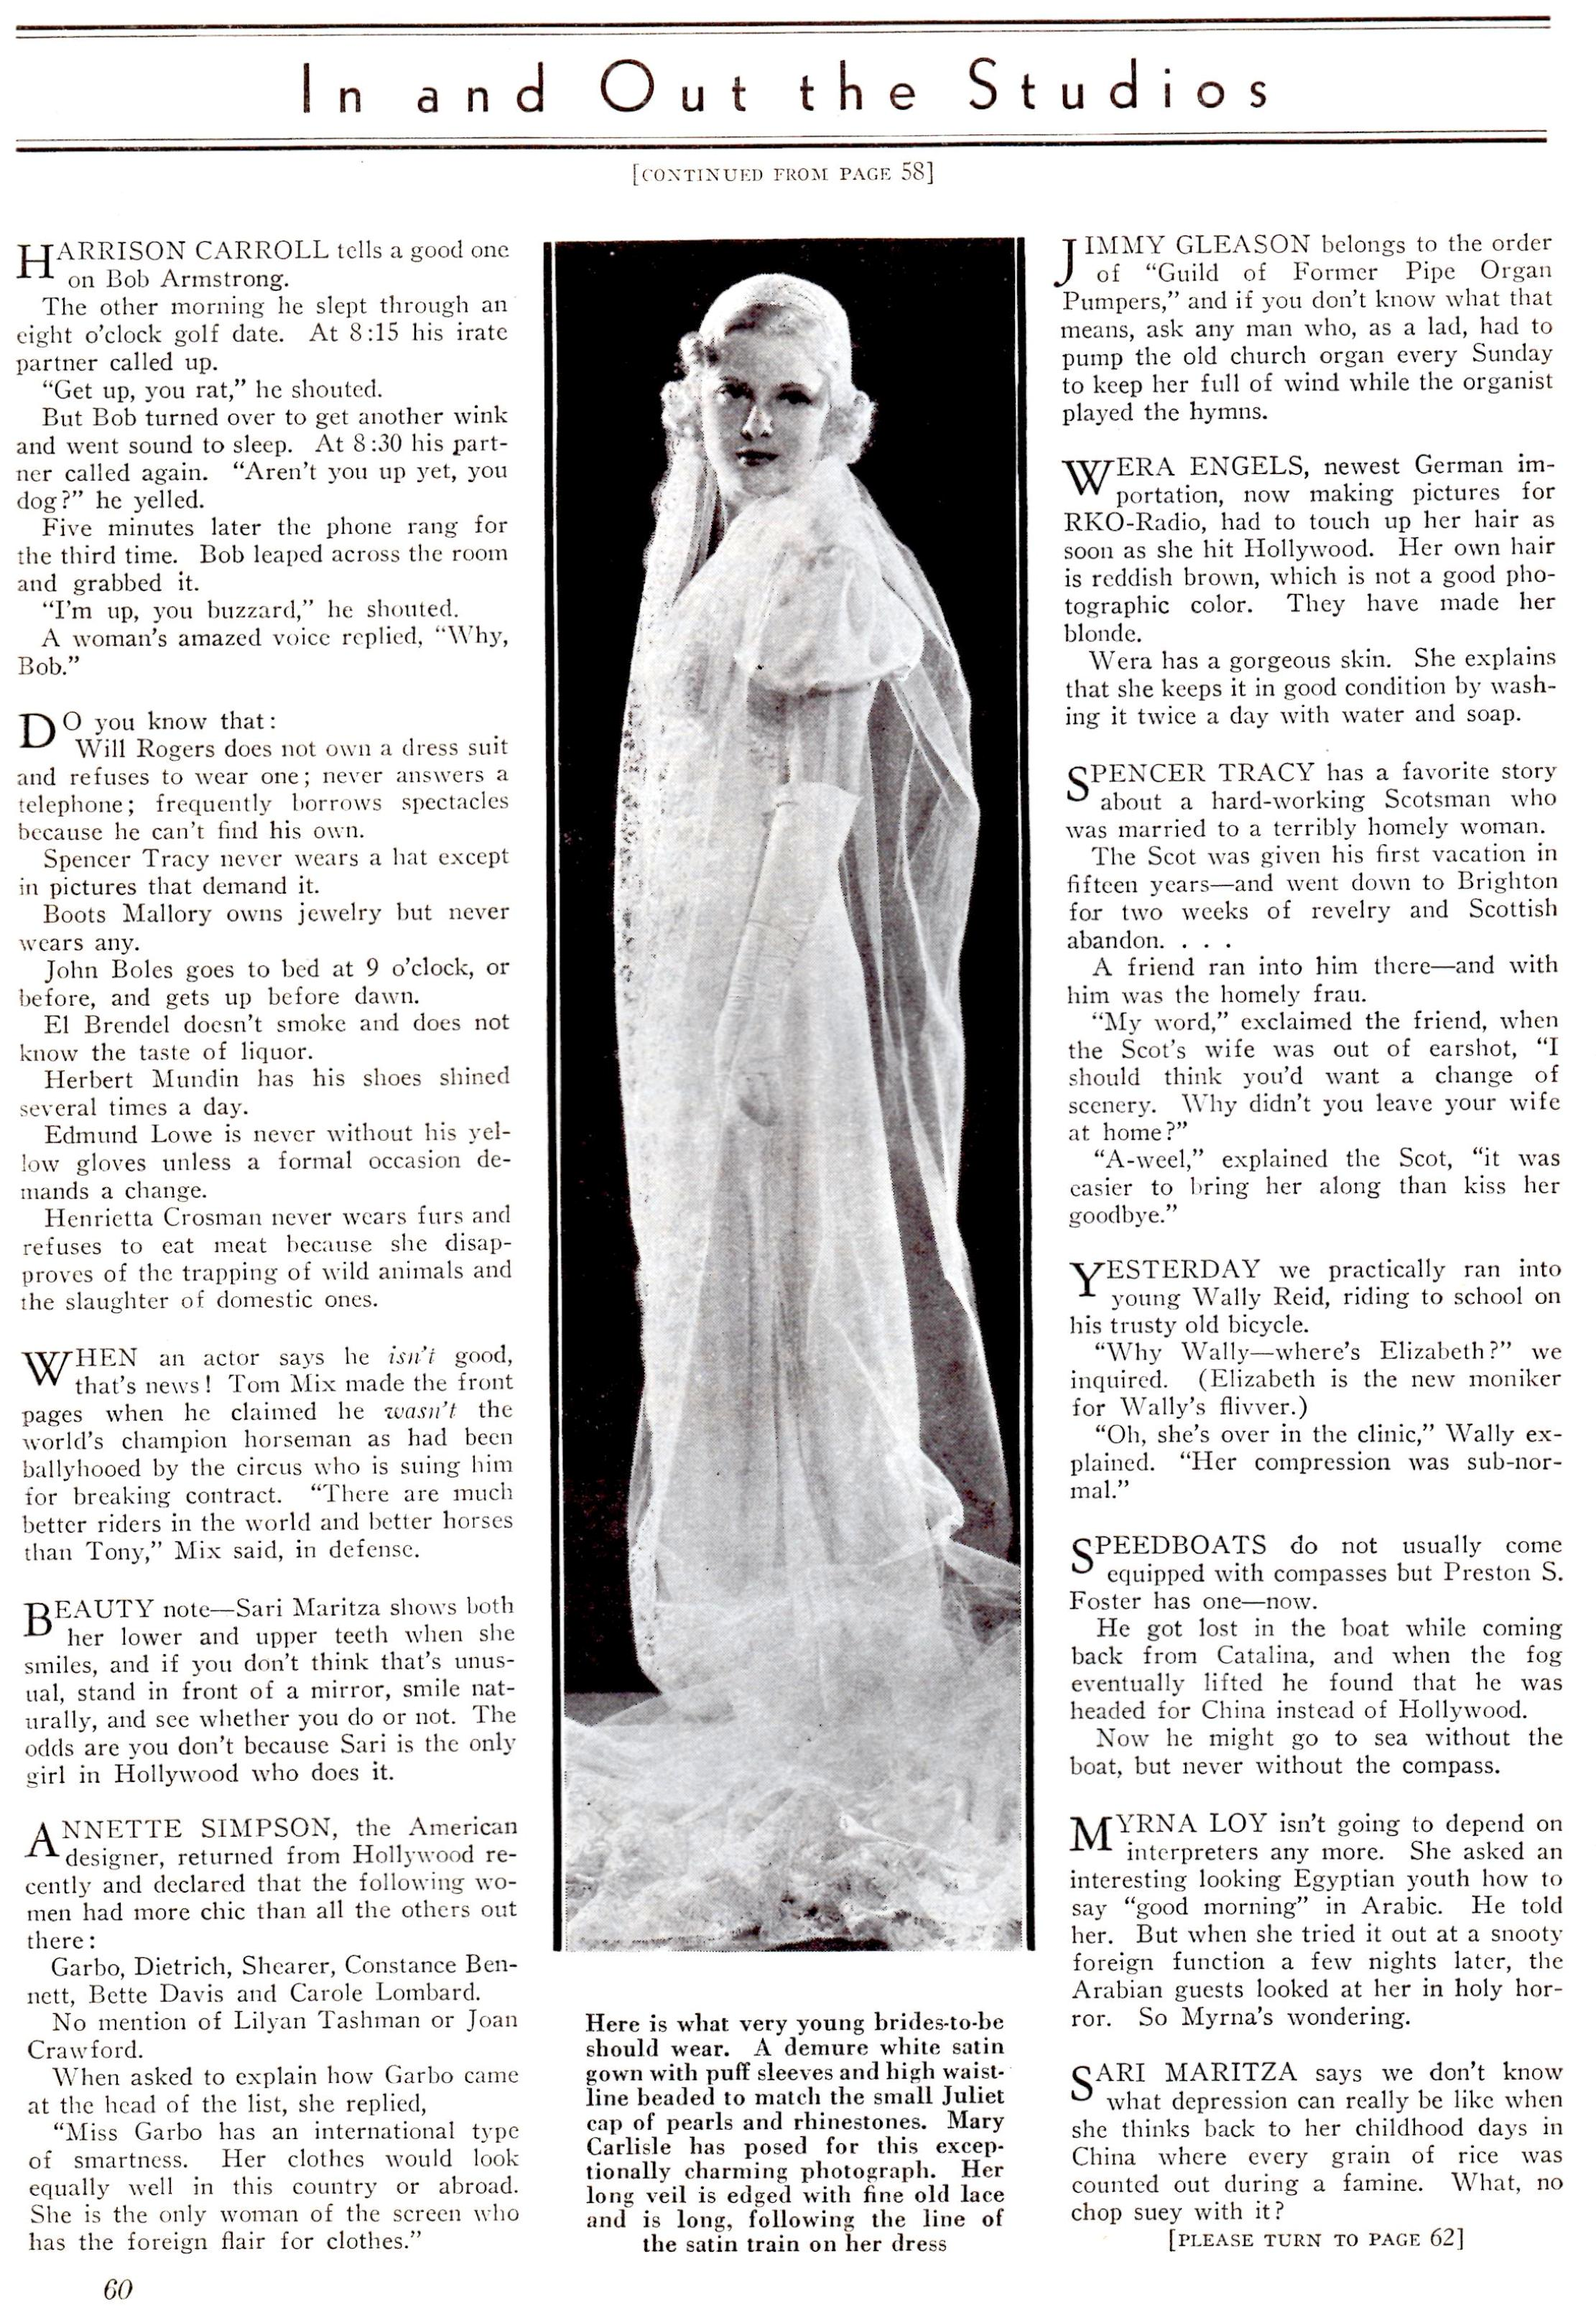 carole lombard shadoplay may 1933fa